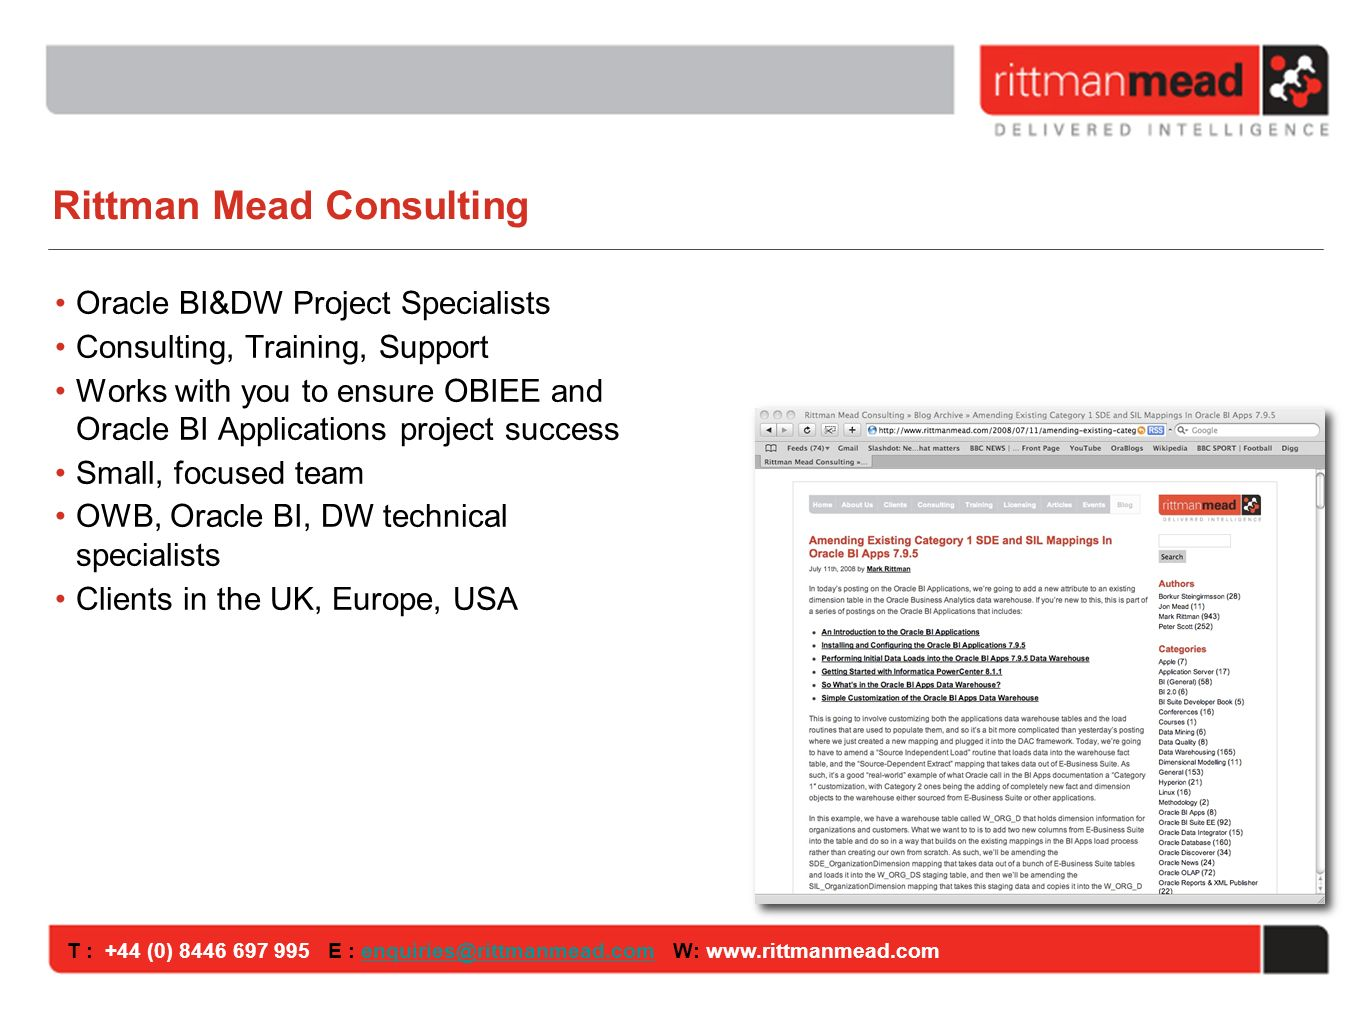 T : +44 (0) E : W: Rittman Mead Consulting Oracle BI&DW Project Specialists Consulting, Training, Support Works with you to ensure OBIEE and Oracle BI Applications project success Small, focused team OWB, Oracle BI, DW technical specialists Clients in the UK, Europe, USA